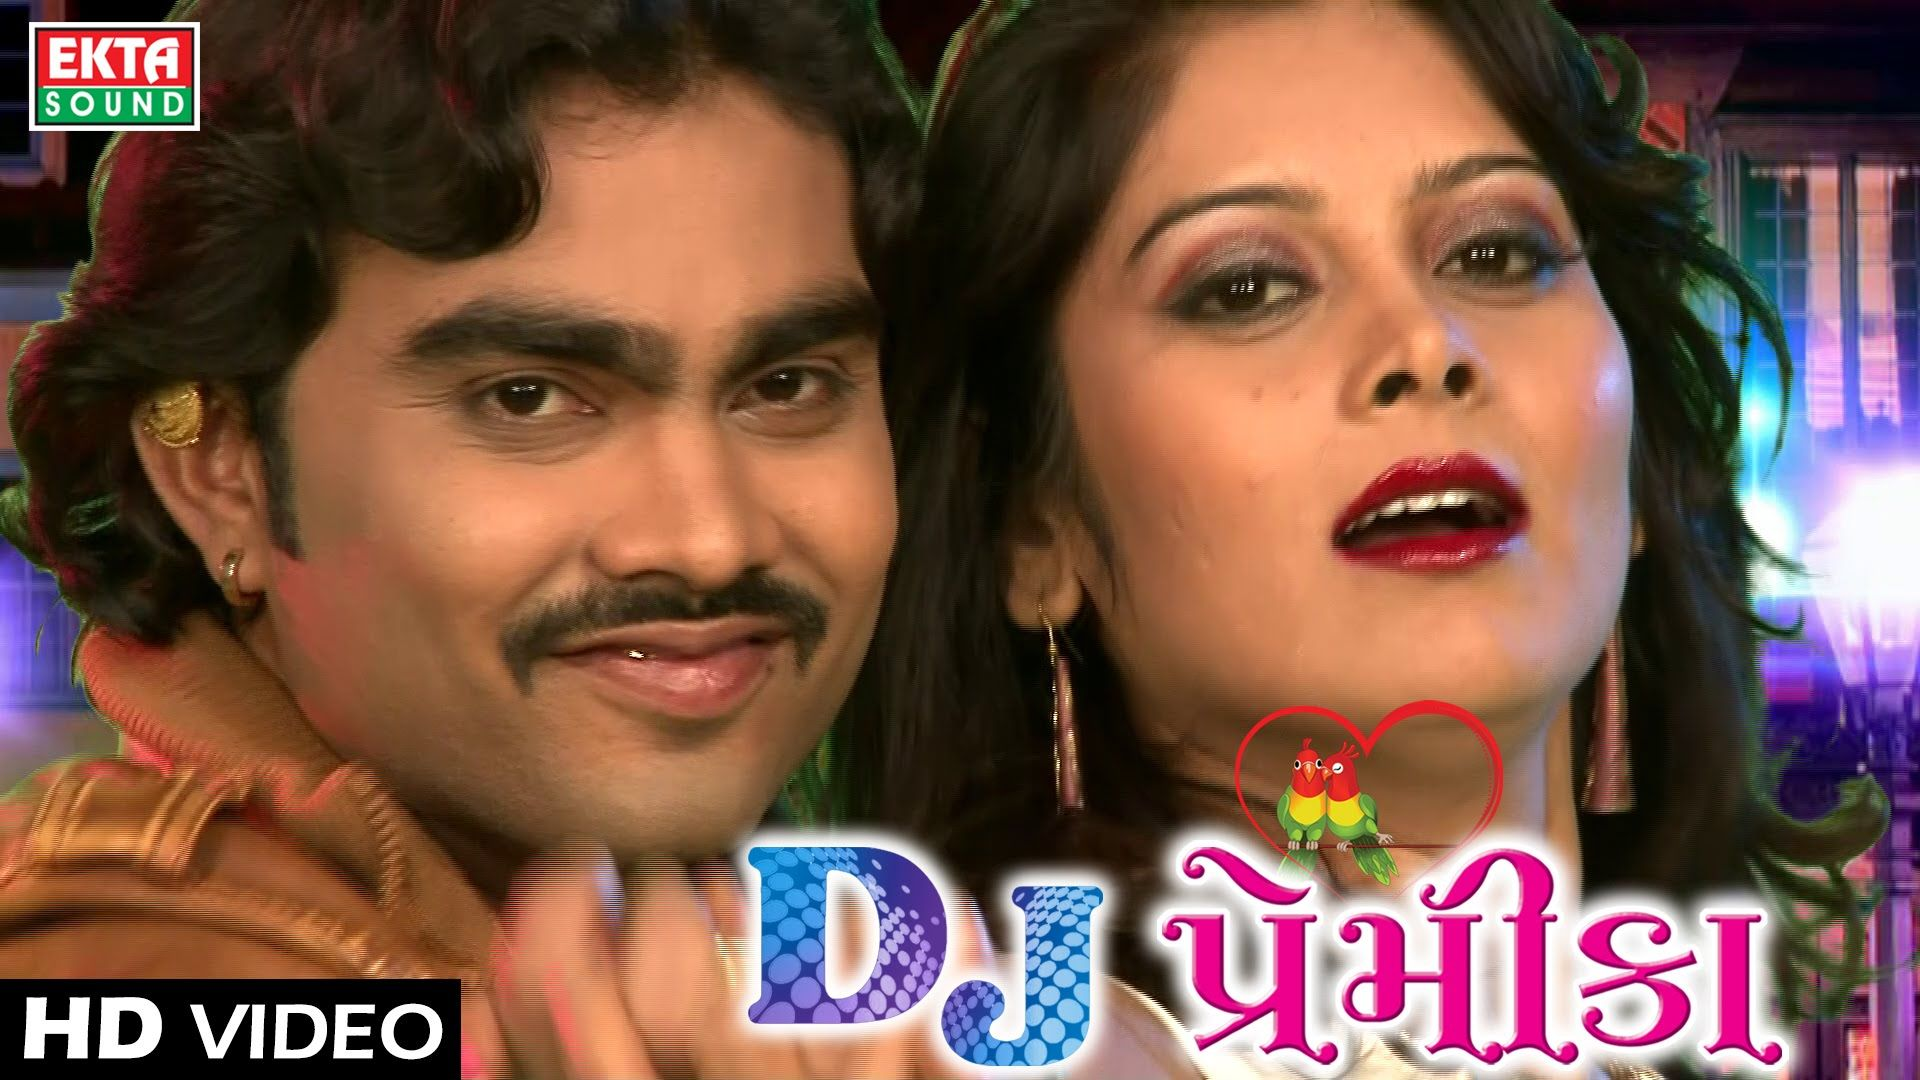 gujarati latest garba song janu tari sogadh che mane rakesh